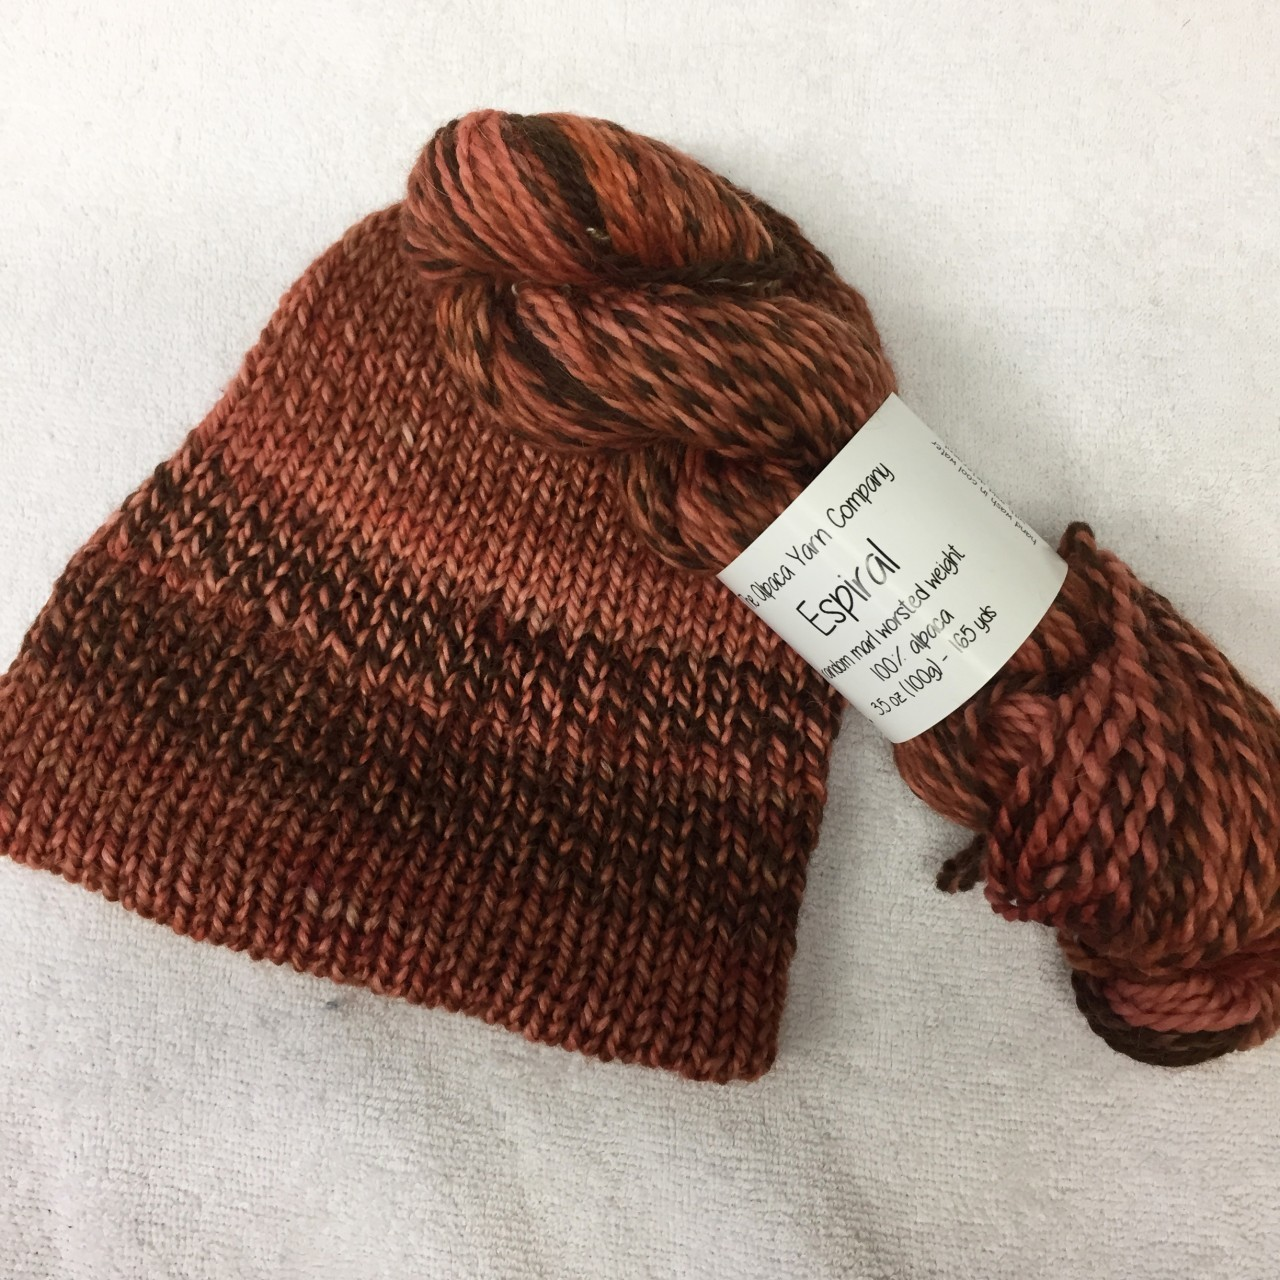 Espiral Alpaca Yarn - Birch Beer